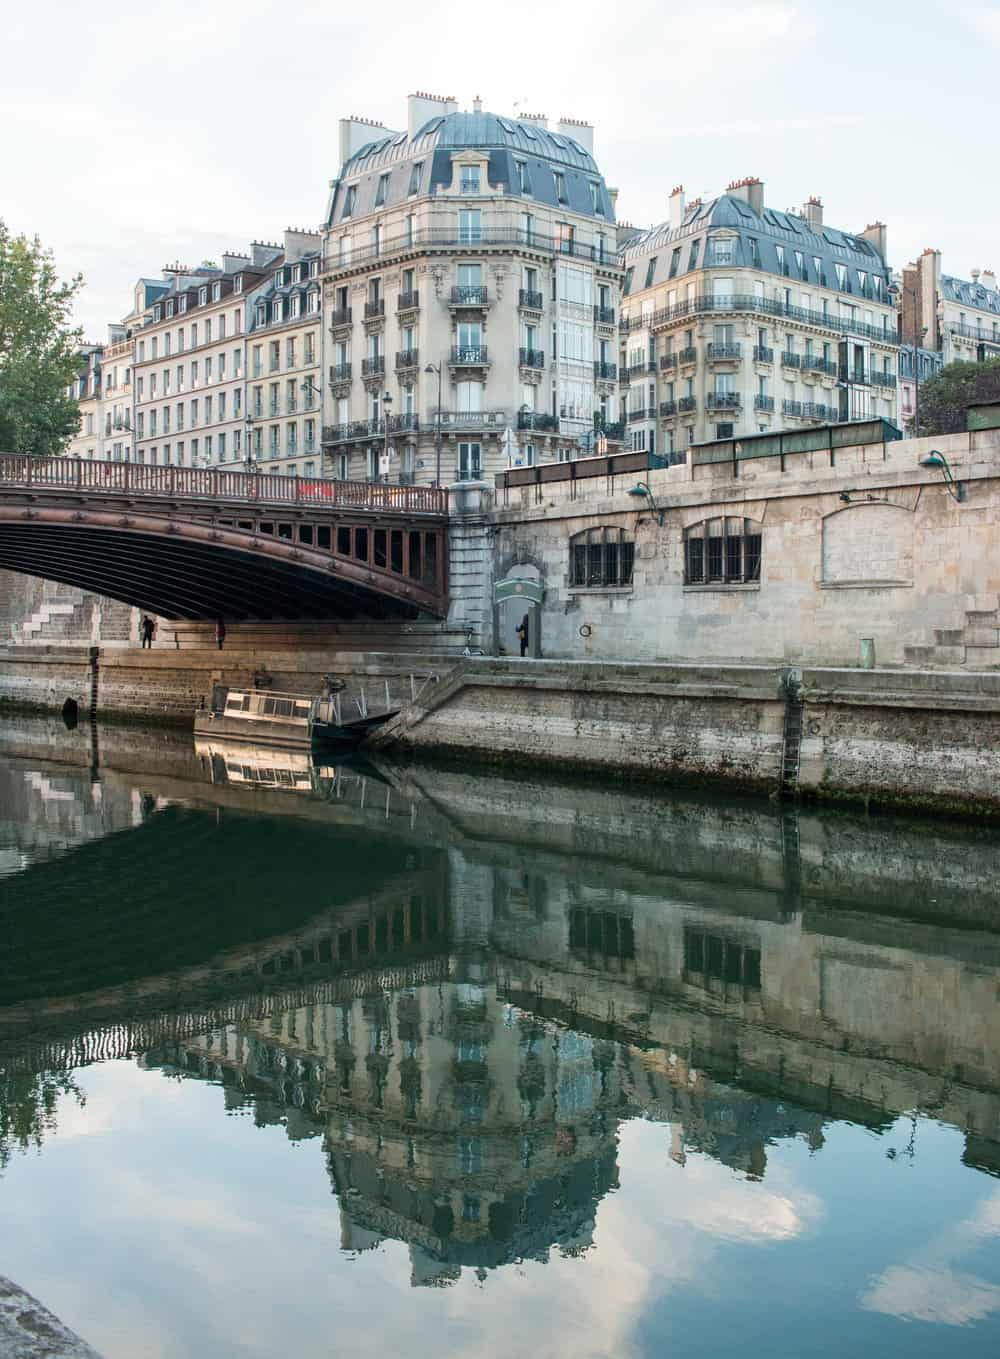 waking up in paris in place dauphine by rebecca plotnick